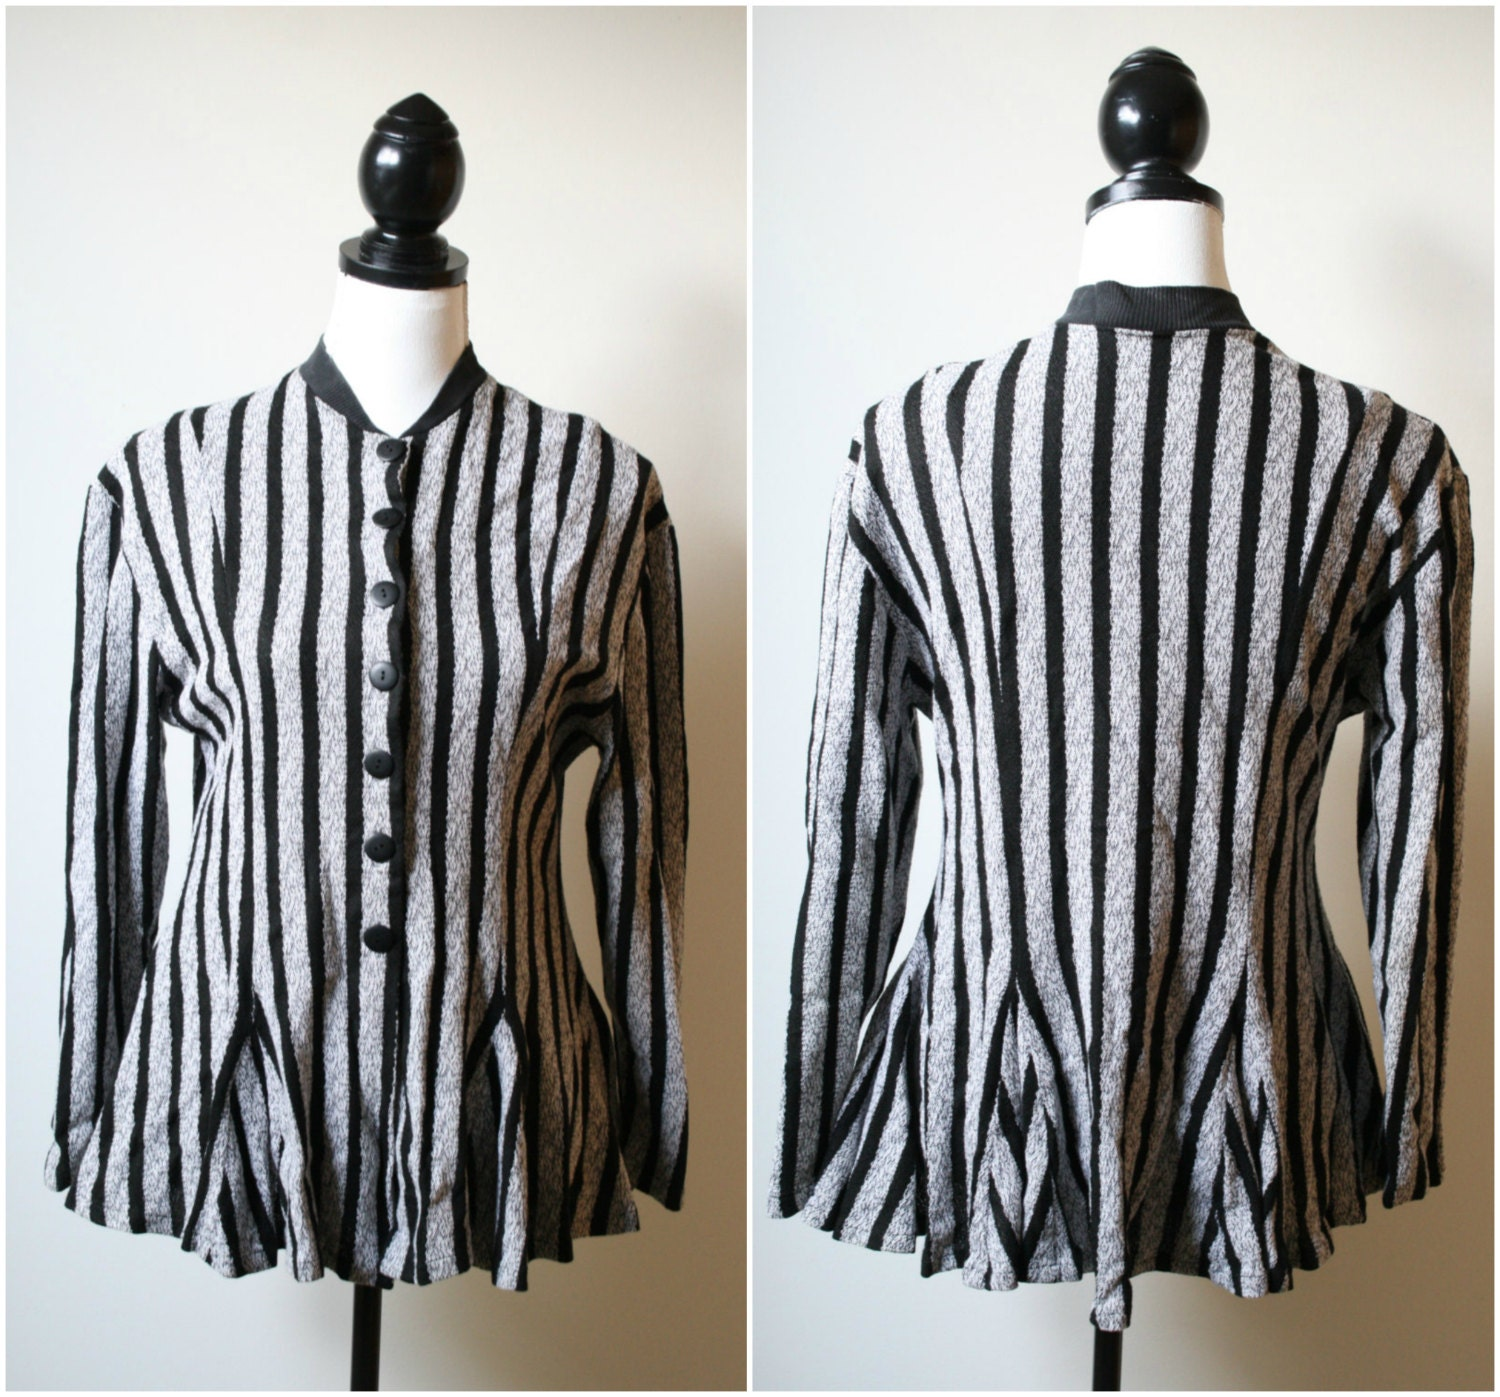 Beetlejuice Blazer - 1980s Knit and Woven Cotton Black and White Peplum Jacket made in Bali M